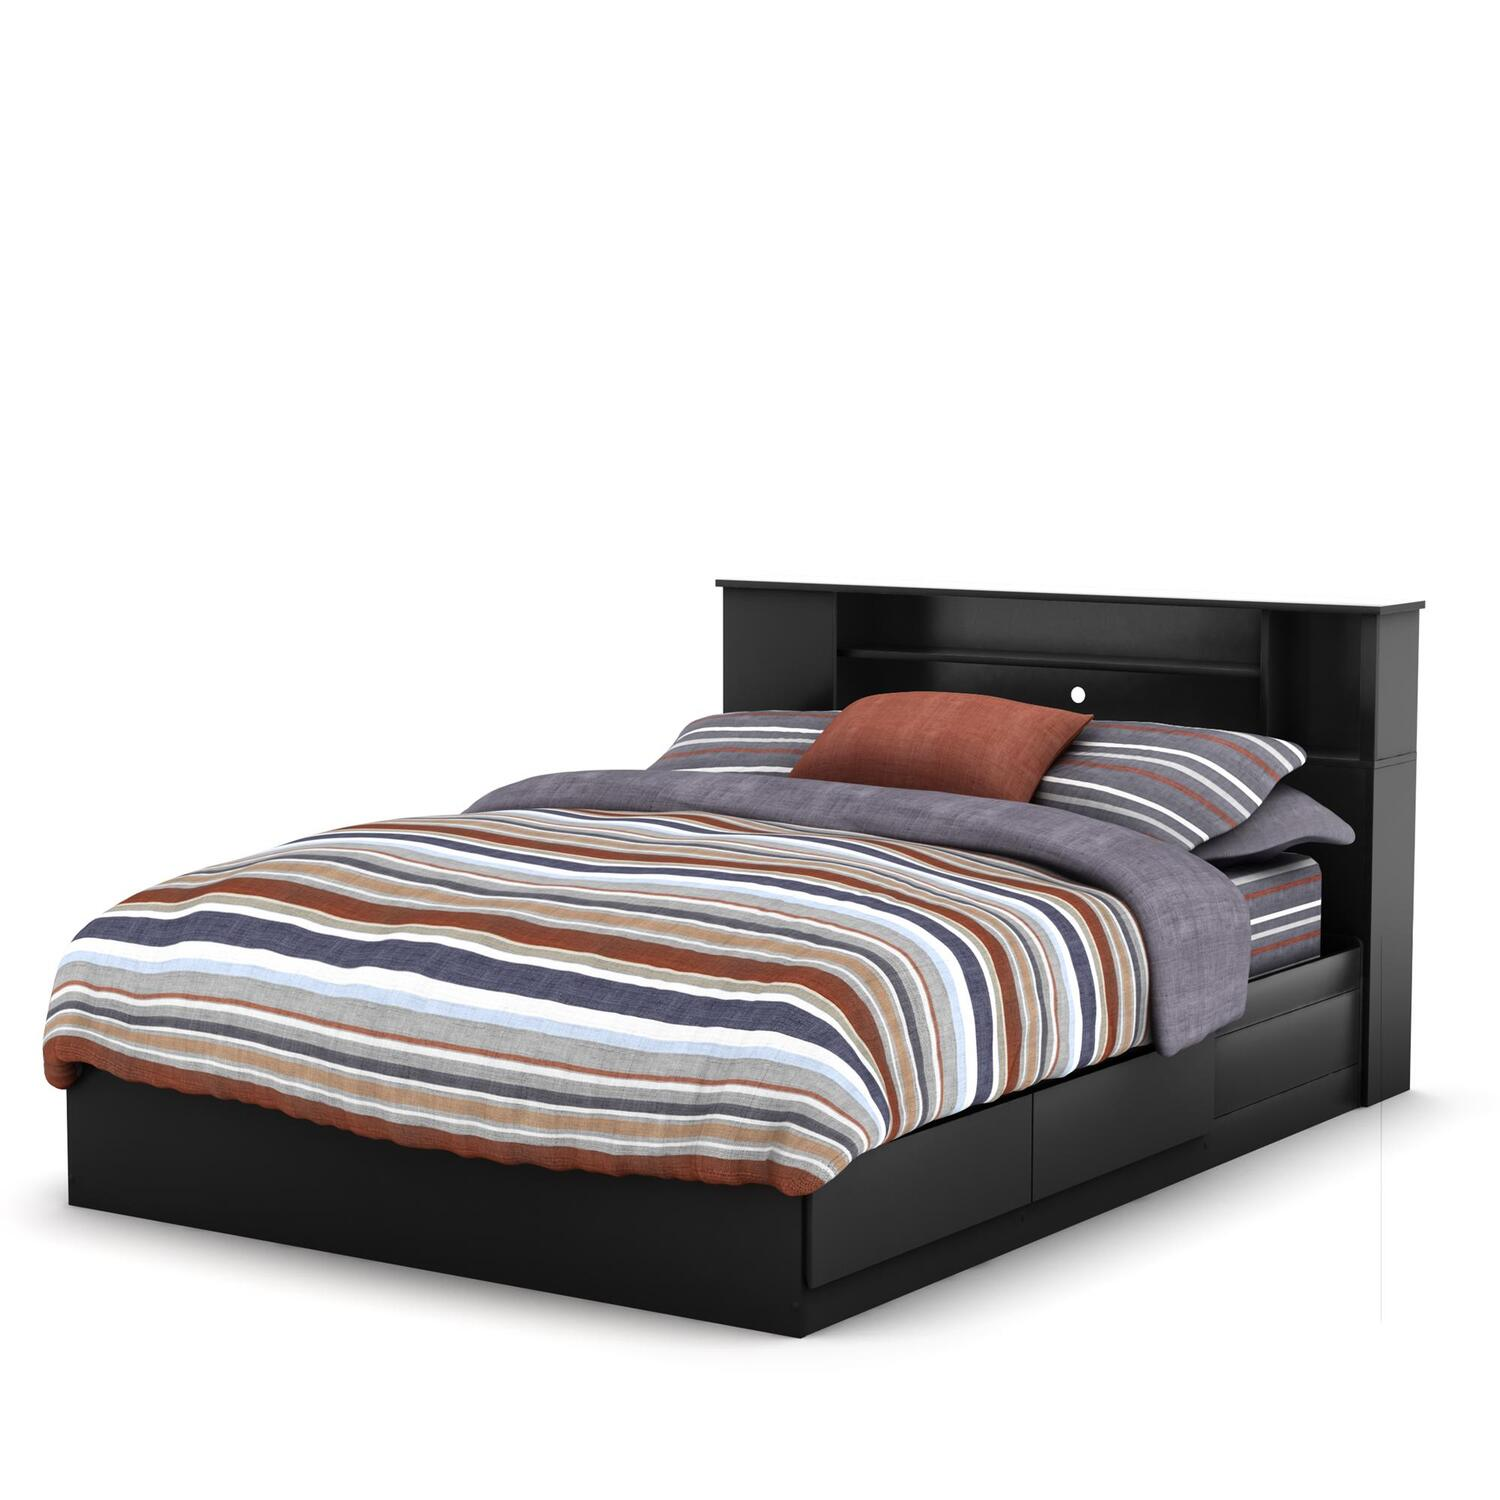 Vito Queen Bed Bookcase Headboard 3170qblk